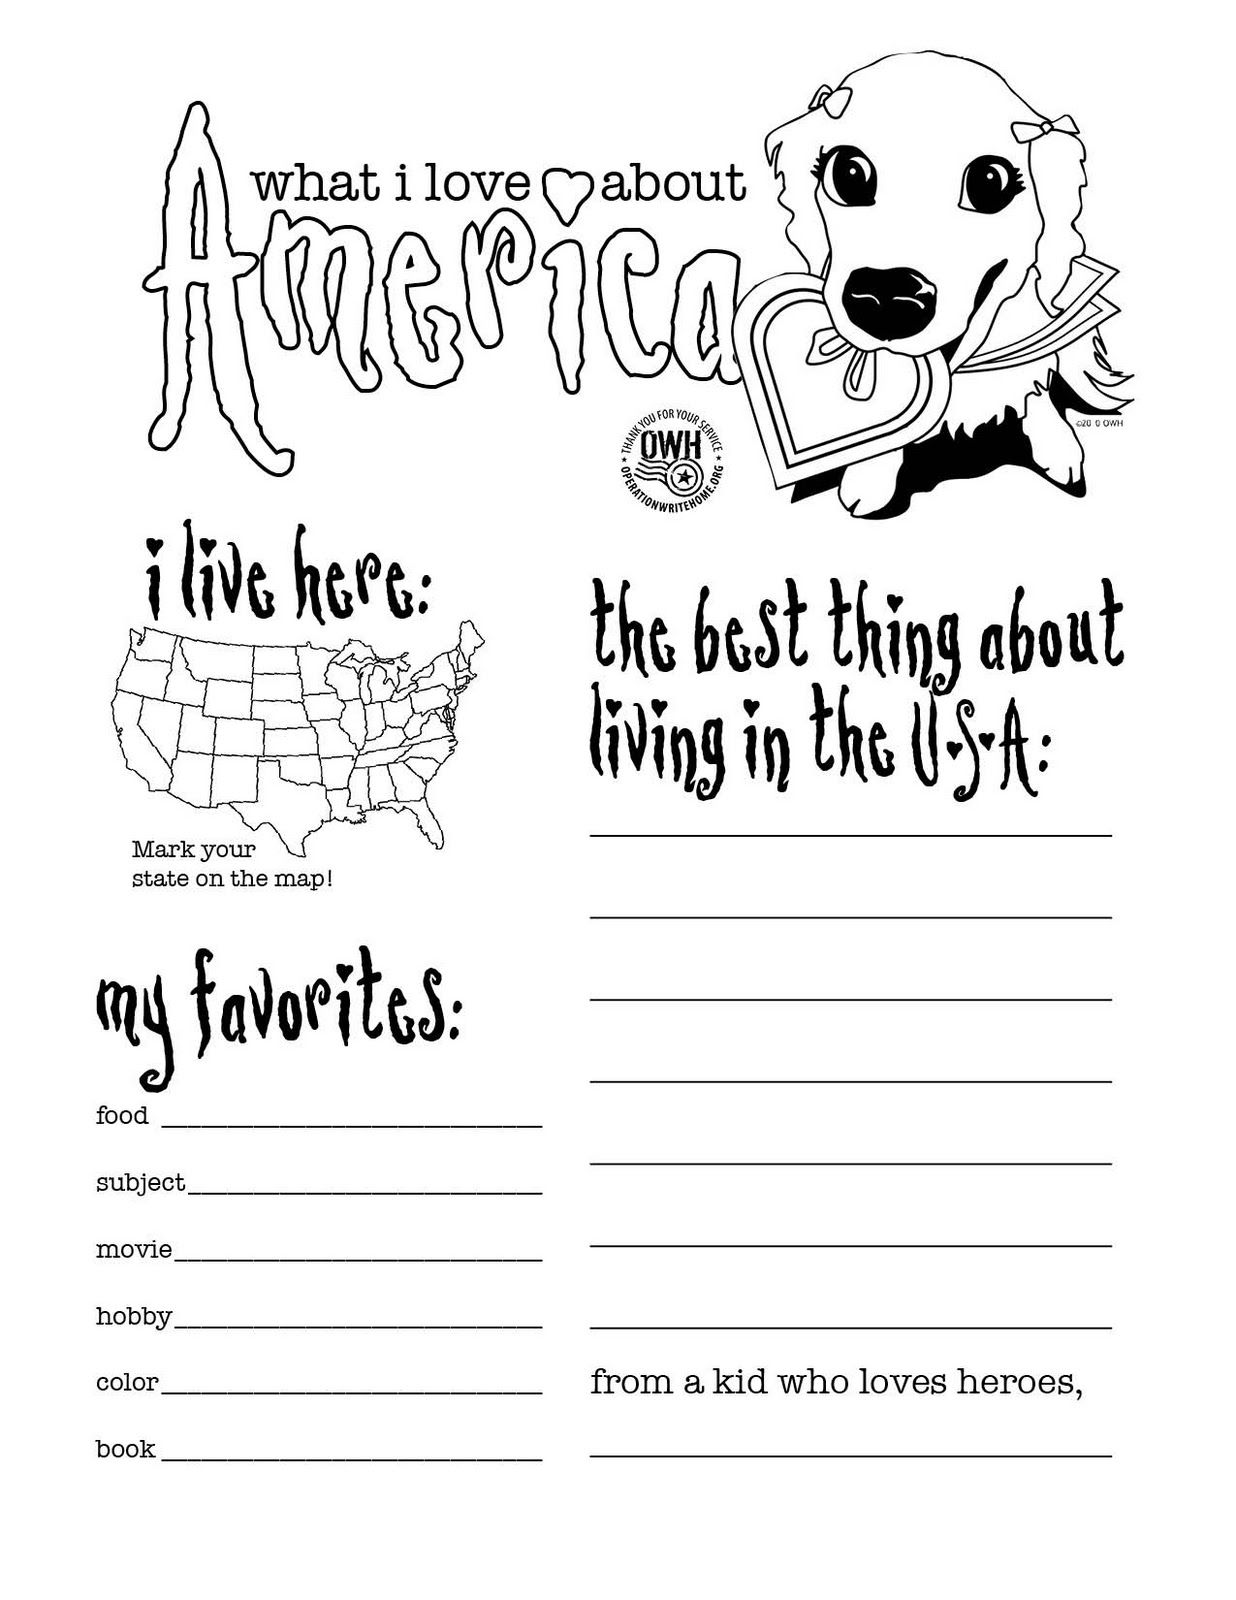 God Bless America Coloring Page Troops Google Search Teacher